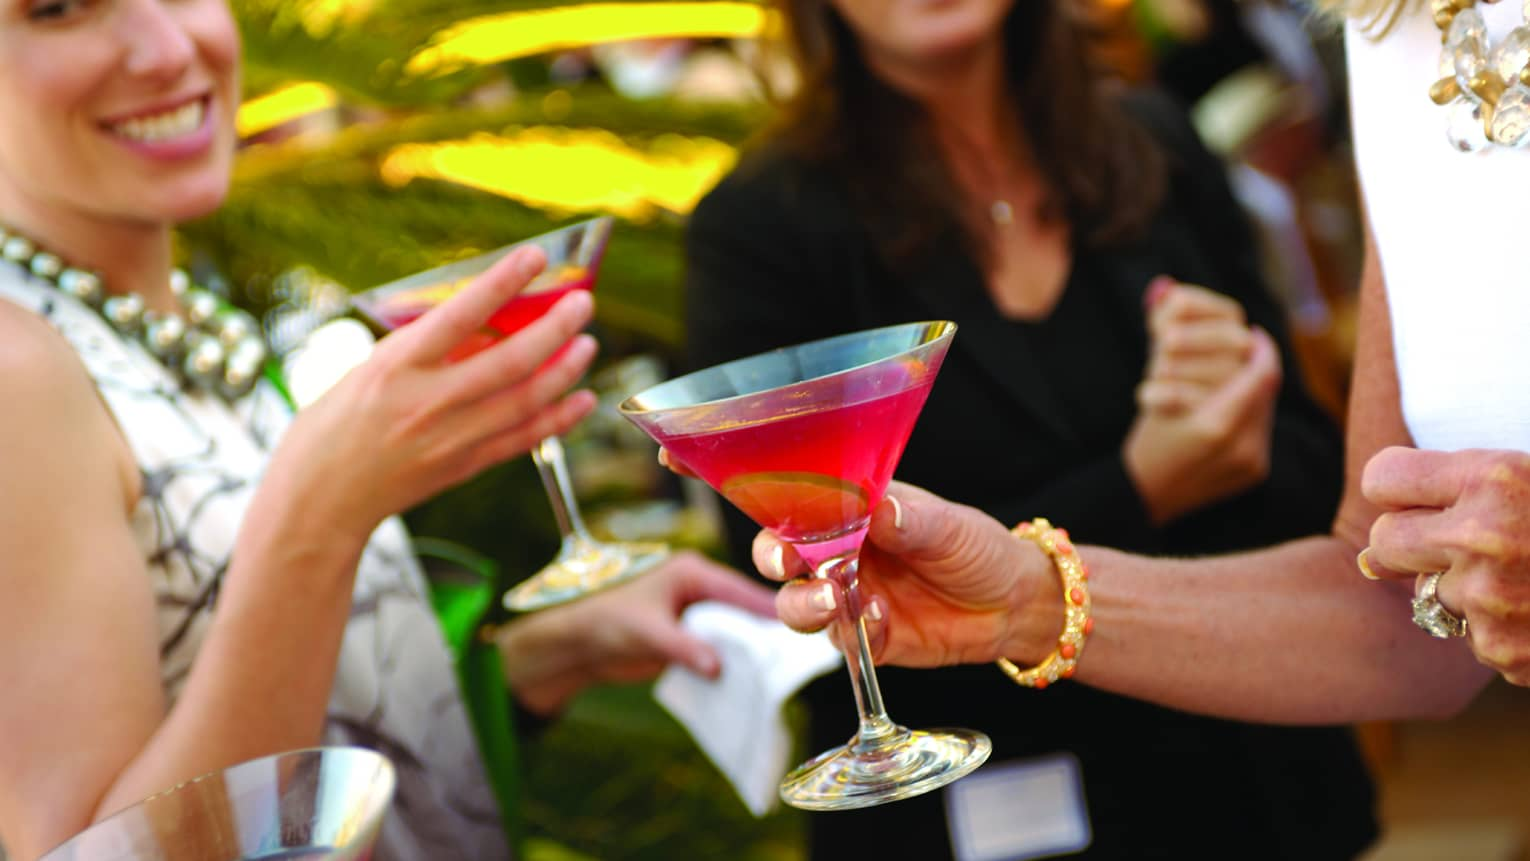 Group of smiling women holding colourful cocktails in sunny garden